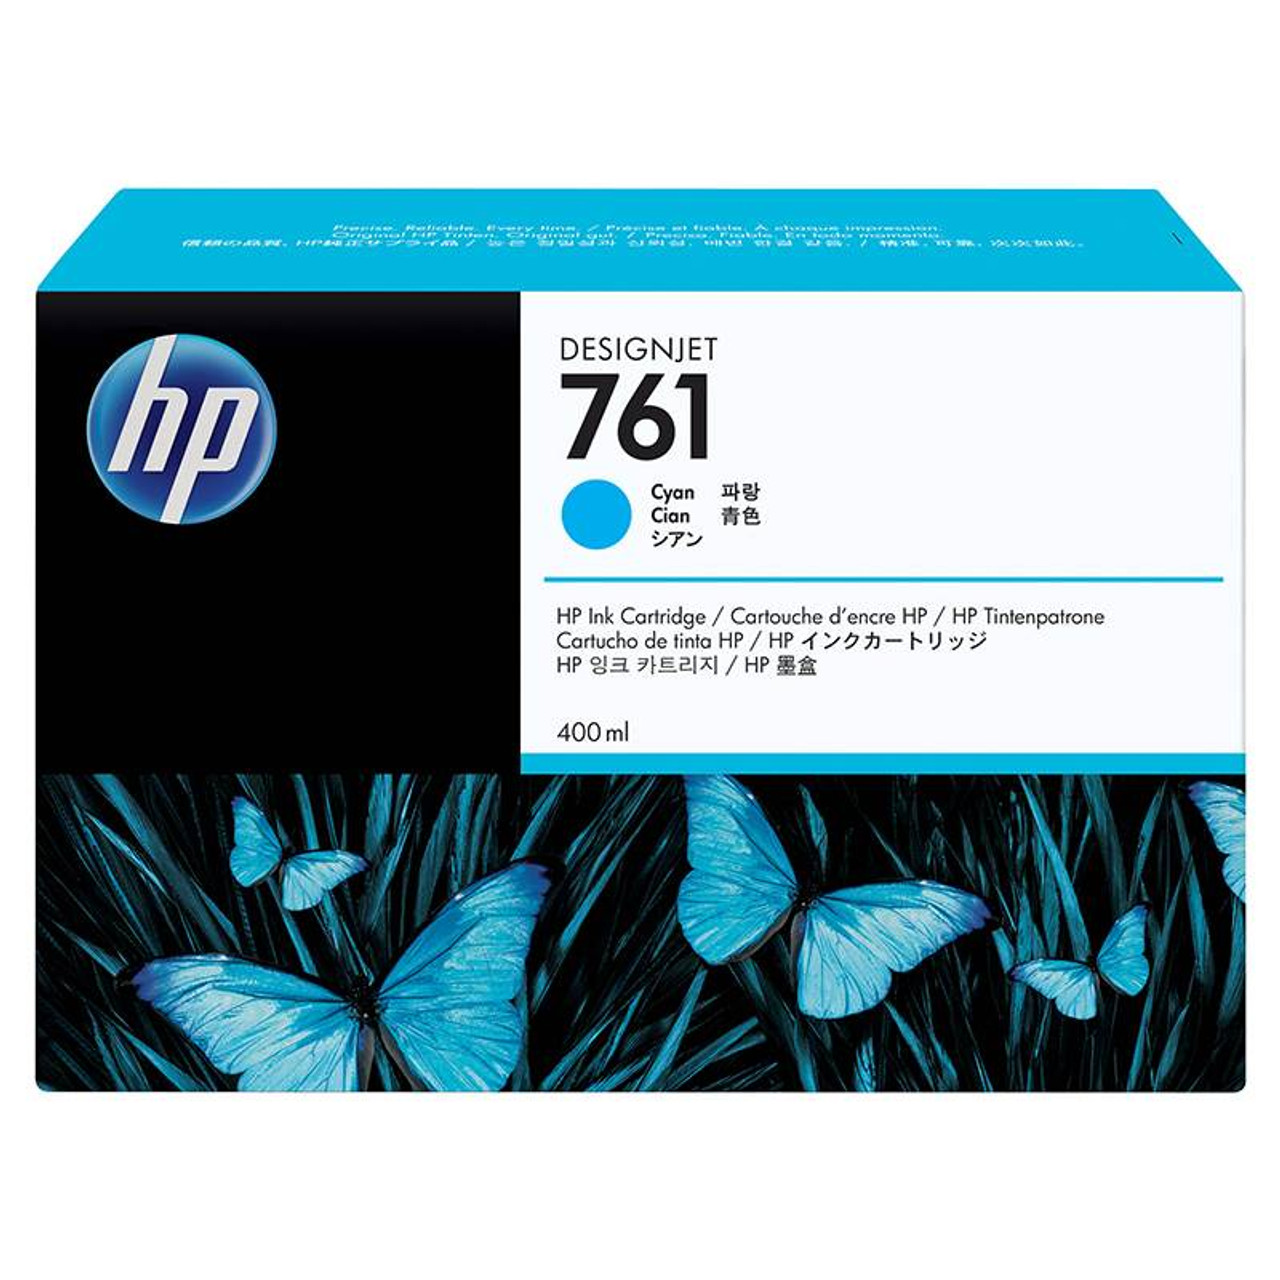 Image for HP761 400ML DesignJet Ink Cartridge - Cyan (CM994A) CX Computer Superstore